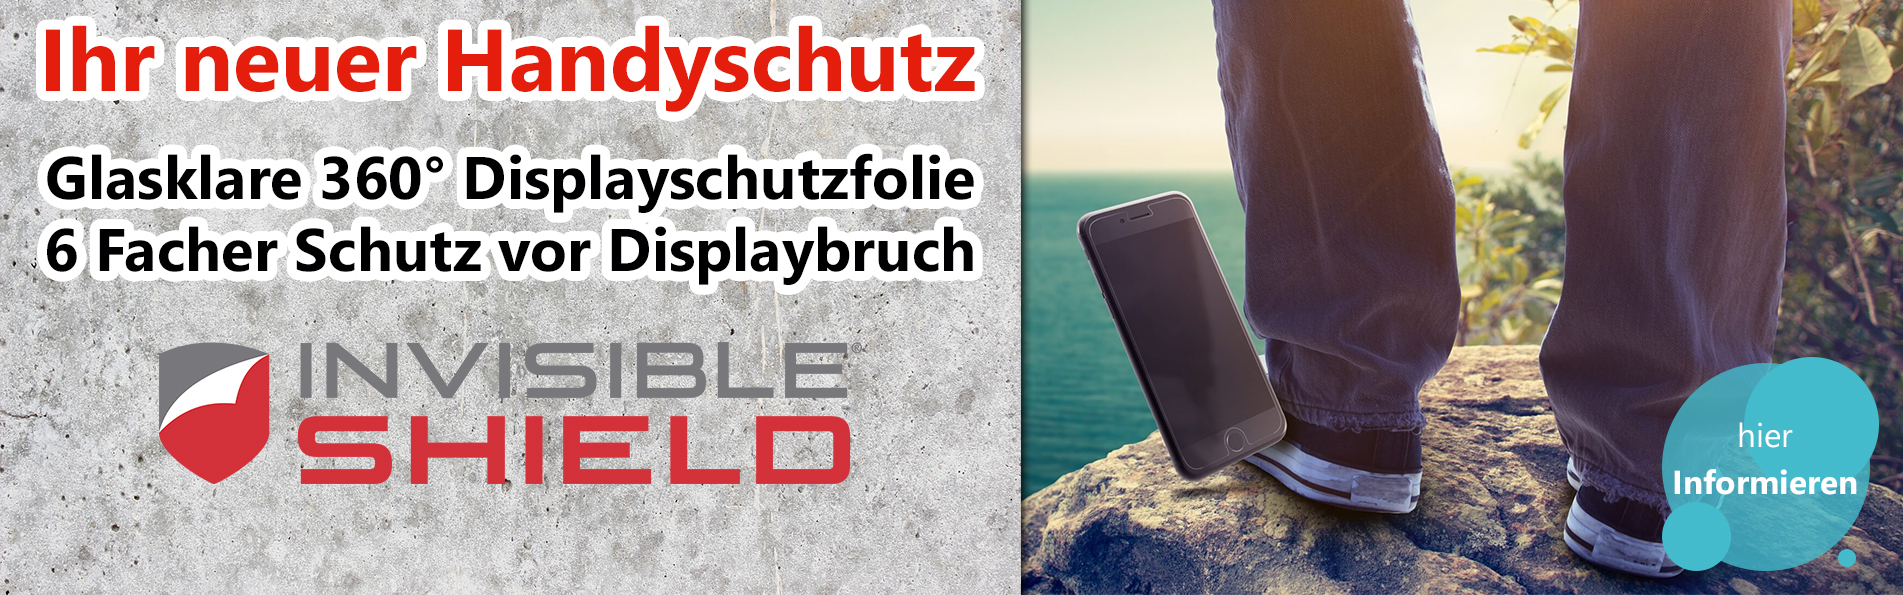 Invisible Shield DisplayschutzfolieWesatel Banner Webseite